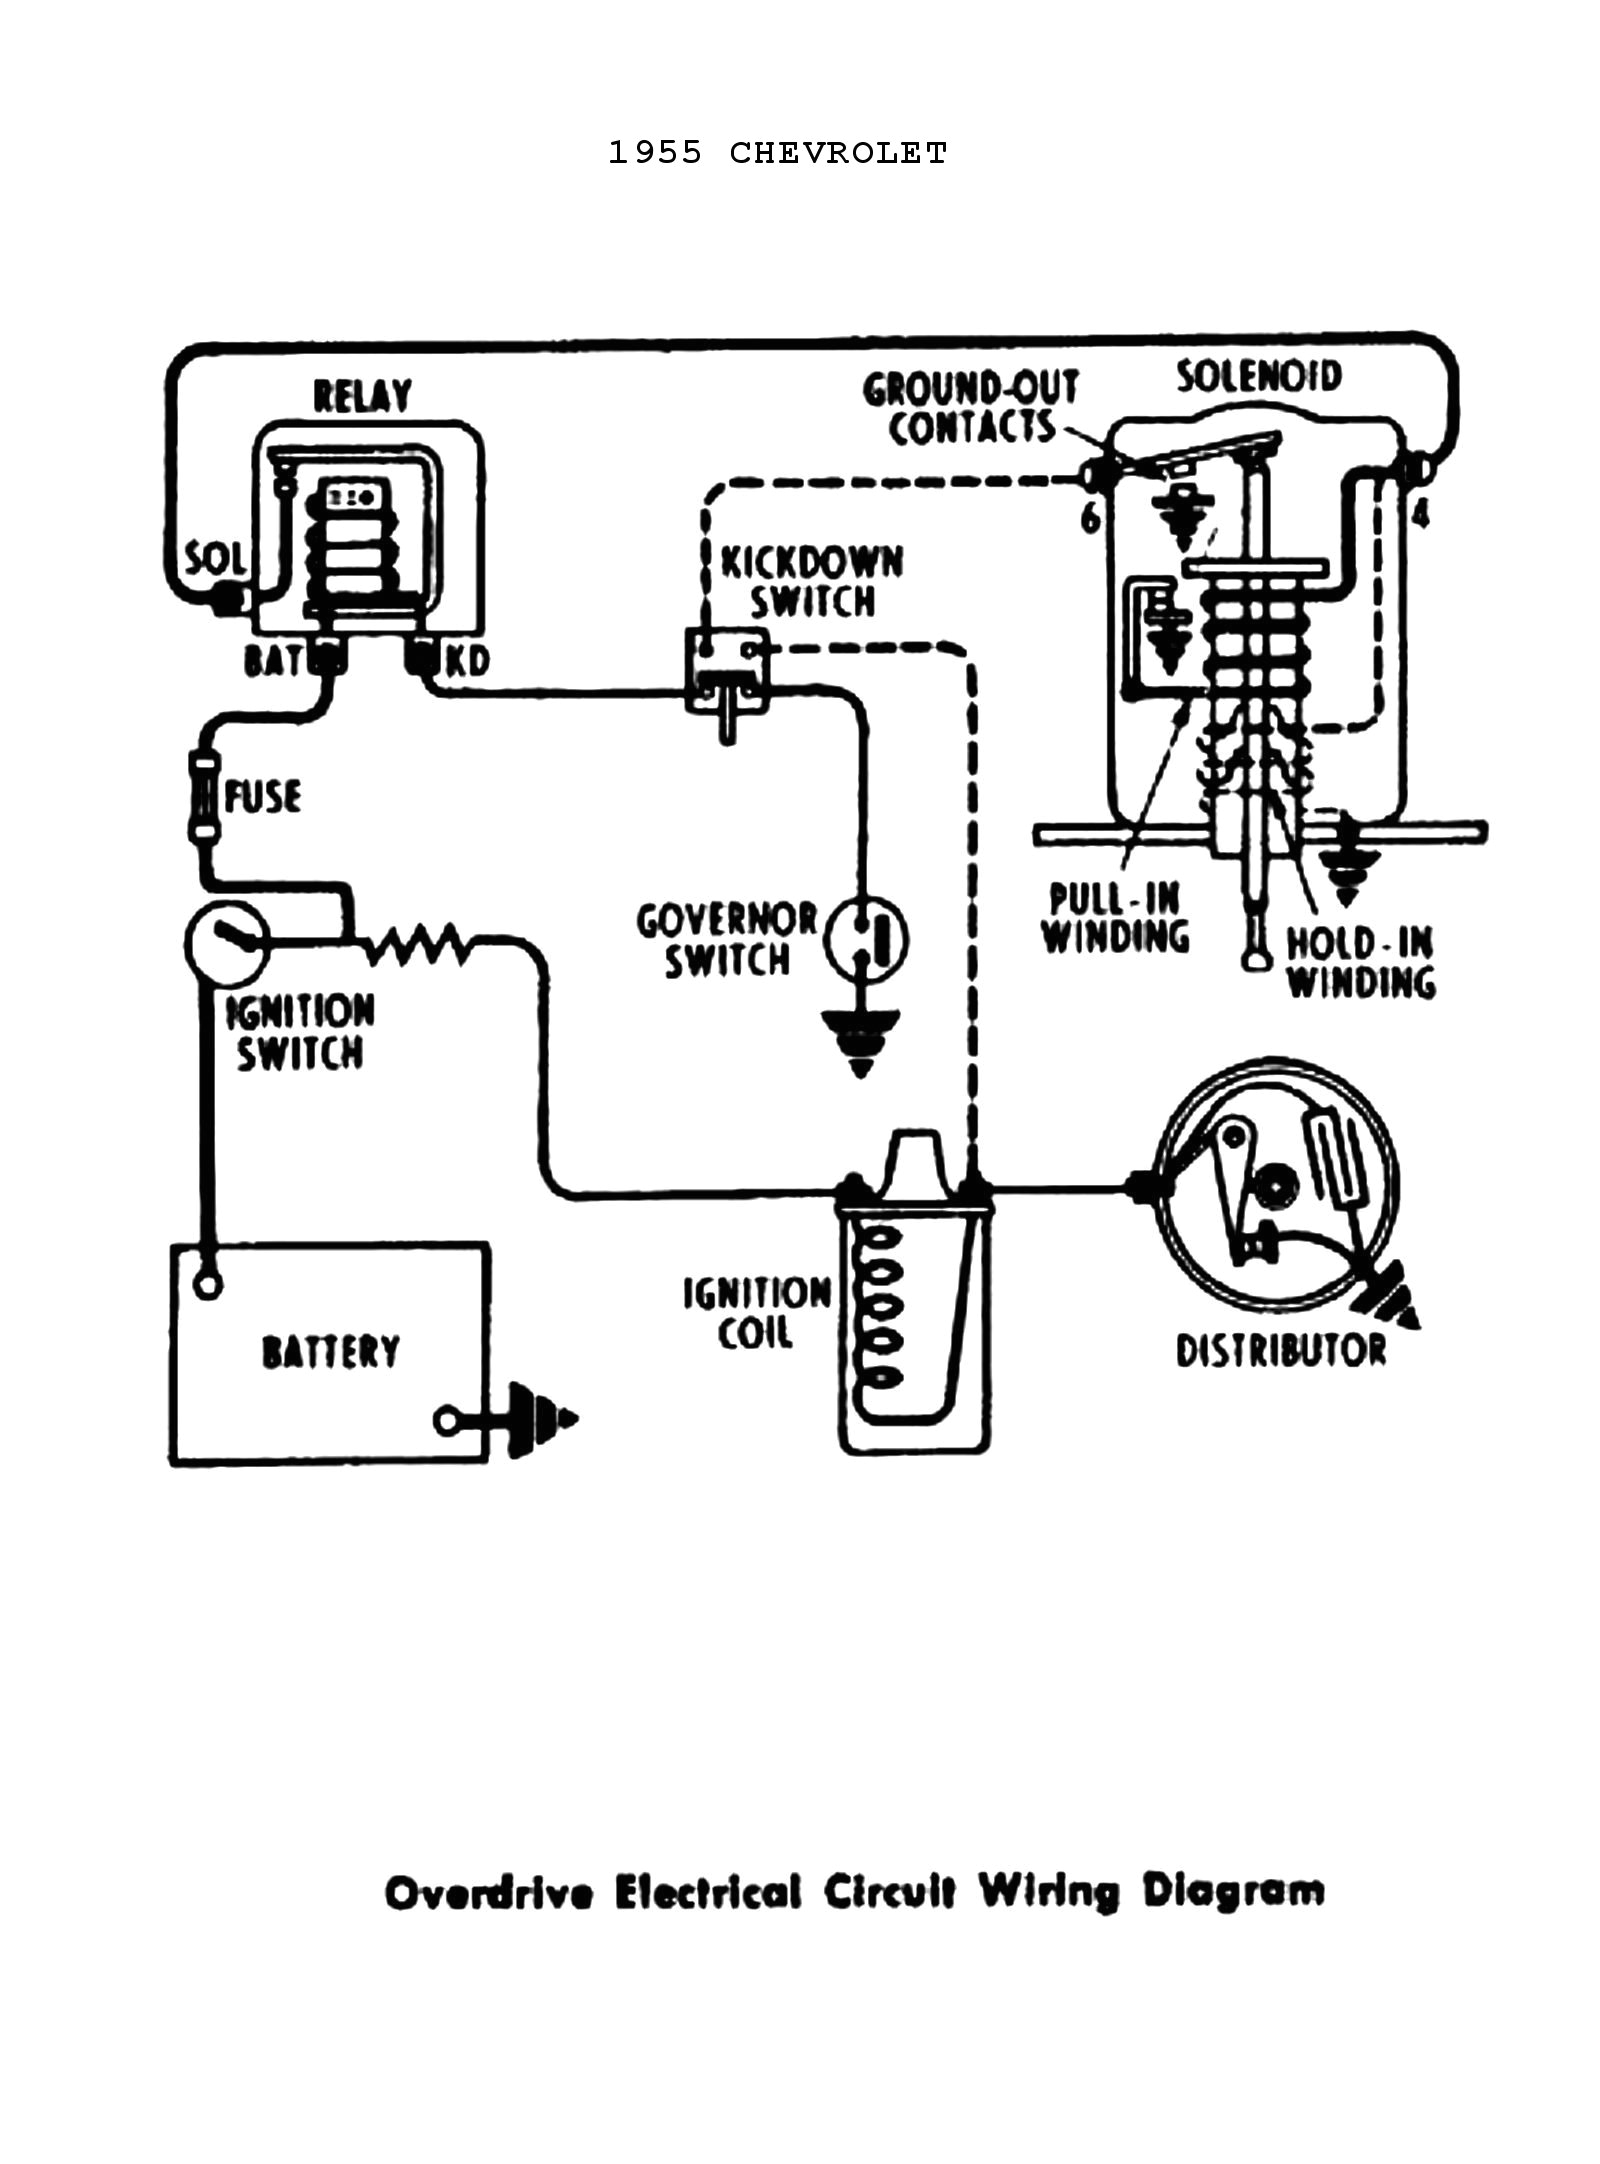 1956 chevy overdrive wiring wiring diagram info 1955 chevy overdrive wiring diagram 1955 chevy overdrive wiring diagram